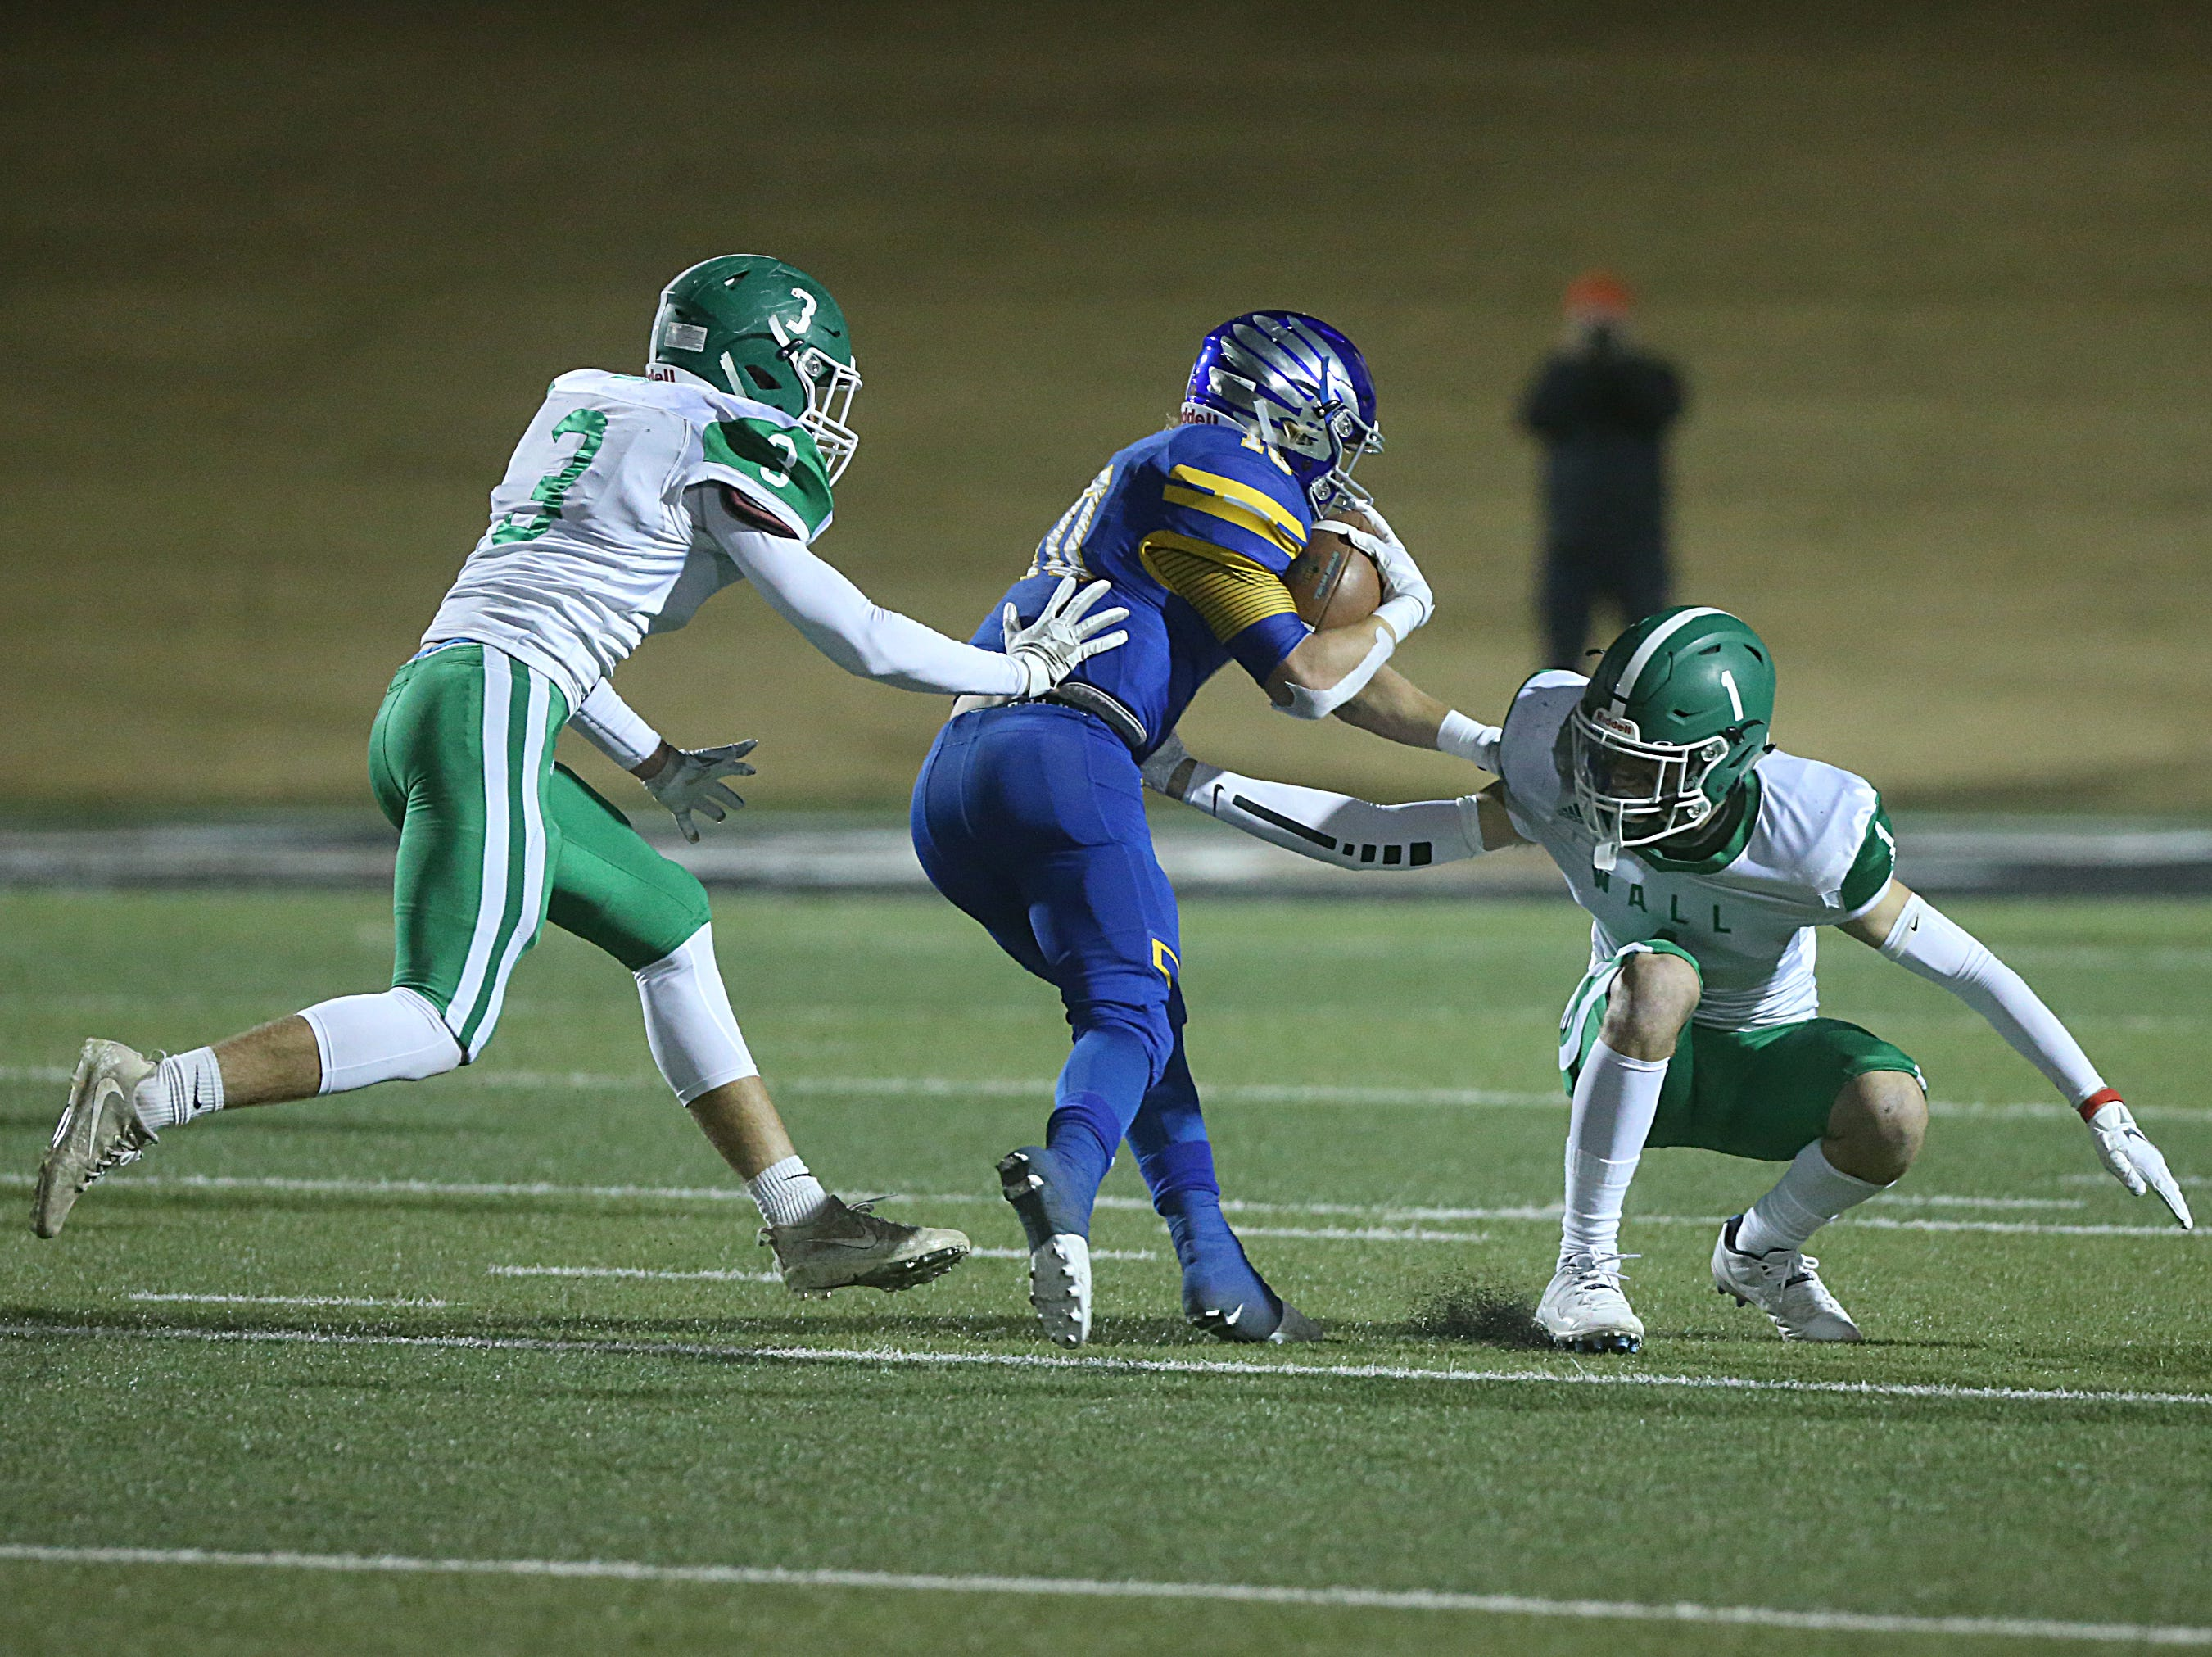 Wall's Joe Walker (#3) and Cameron Barnes (#1) trap Brock's Toby Morrison (#10) Friday, Nov. 30, 2018, during their game at Shotwell Stadium in Abilene. Wall lost 13 to 35.